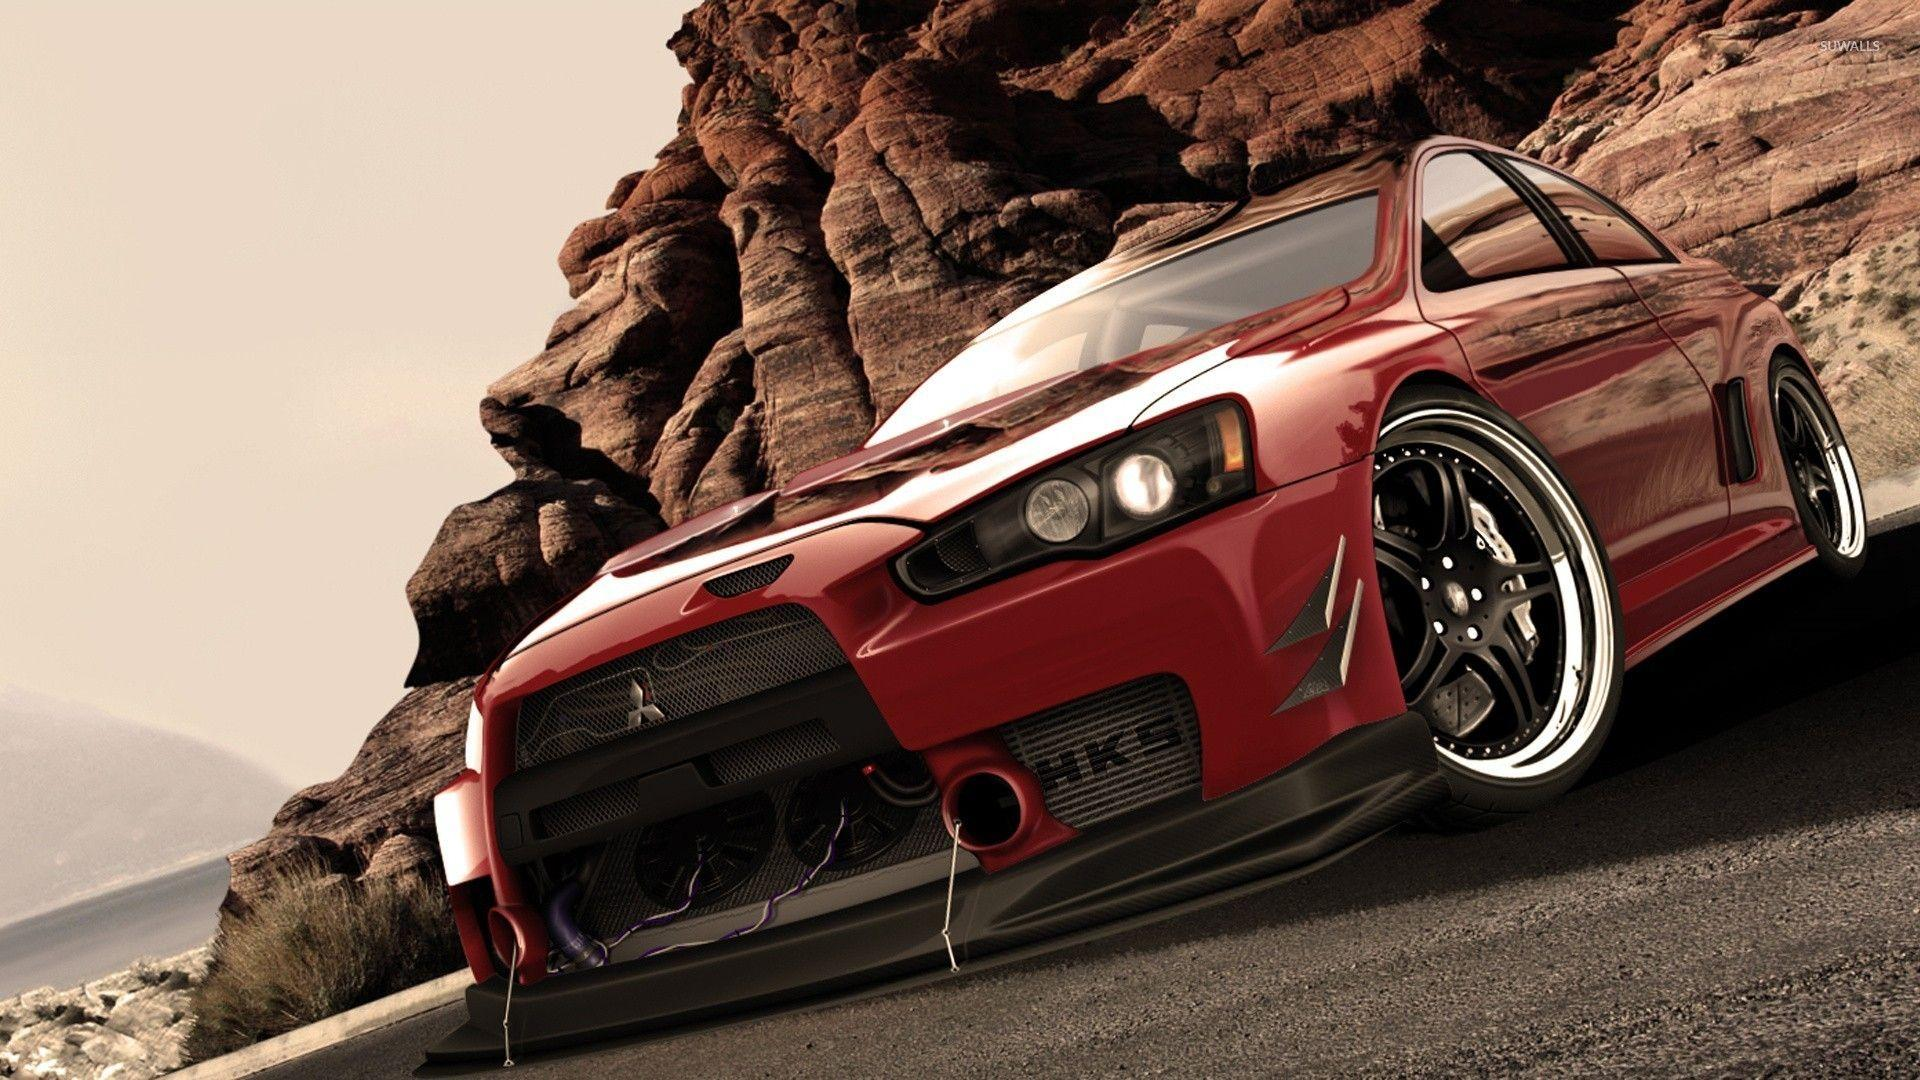 Cars Mitsubishi Lancer Evo X wallpapers